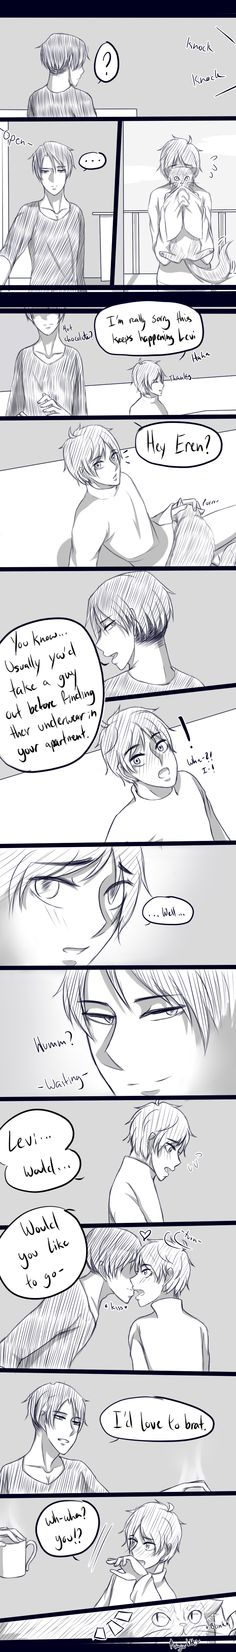 Levi x Eren || The cat that loves to play matchmaker by magickitt on DeviantArt